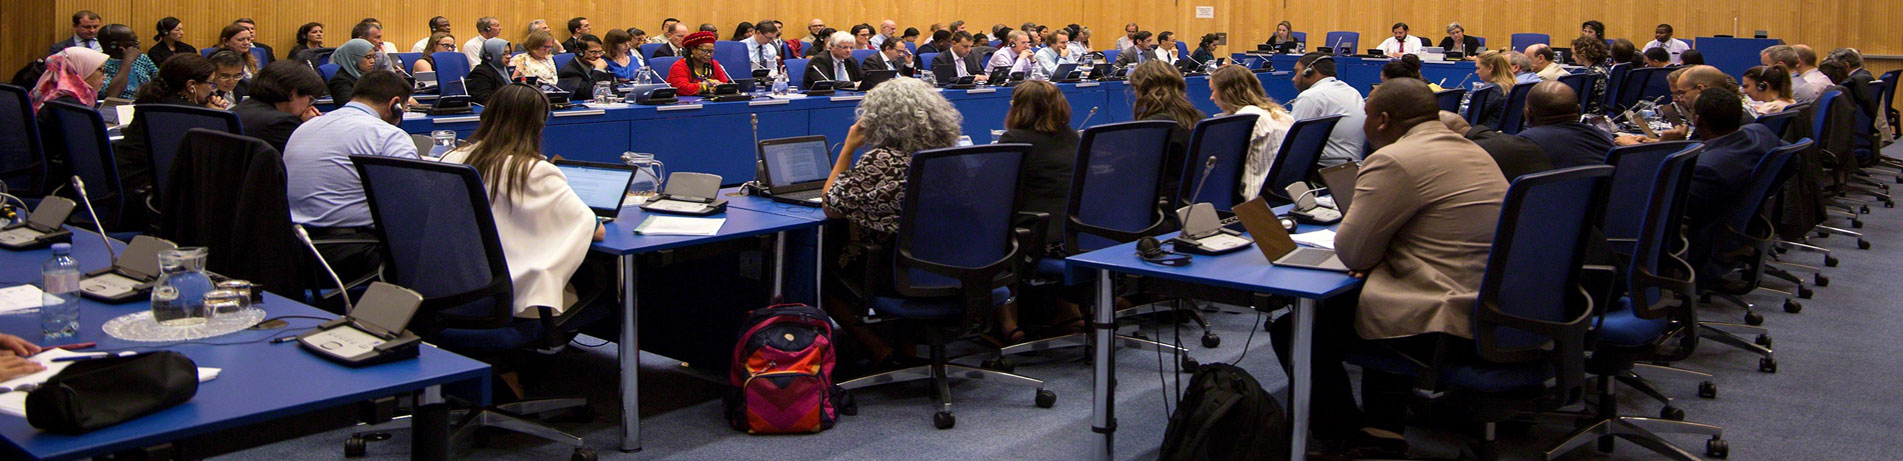 Delegates meeting at the 40th Open Ended Working Group (OEWG) of the Montreal Protocol in Vienna in July 2018